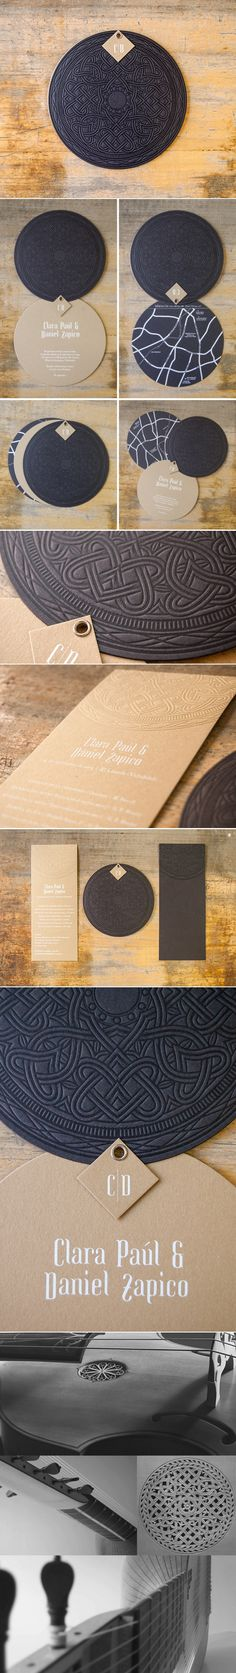 New Wedding Invitations Card Design Shape 19 Ideas Graphisches Design, Book Design, Print Design, Design Ideas, Paper Design, Modern Design, Corporate Design, Corporate Identity, Invitation Design